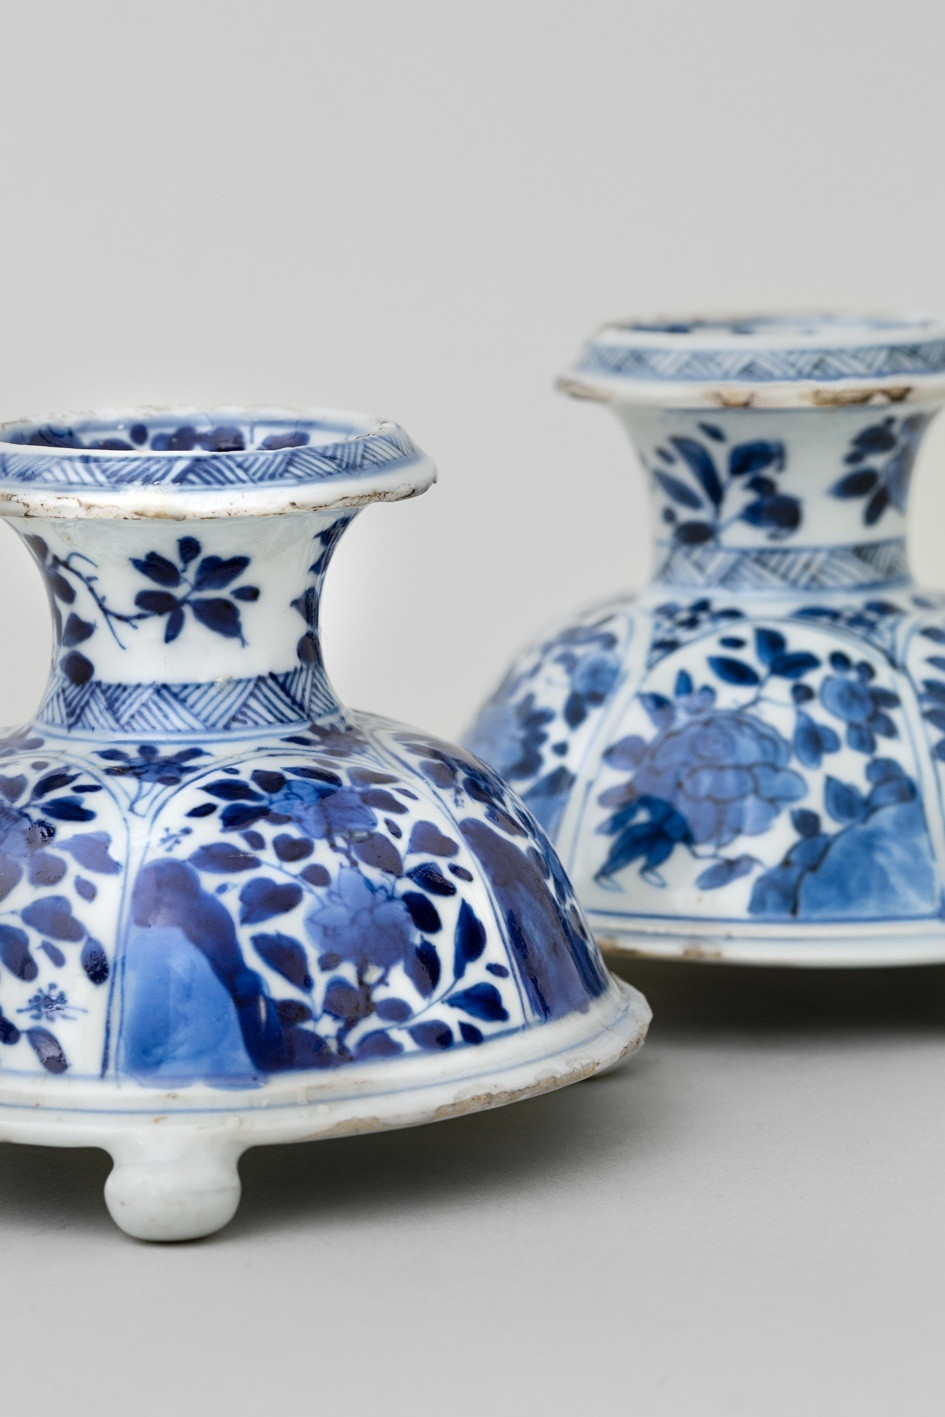 24 Spectacular Chinese Porcelain Vase Shapes 2021 free download chinese porcelain vase shapes of a near pair of chinese blue and white tripod salts kangxi 1662 for a near pair of chinese blue and white tripod salts